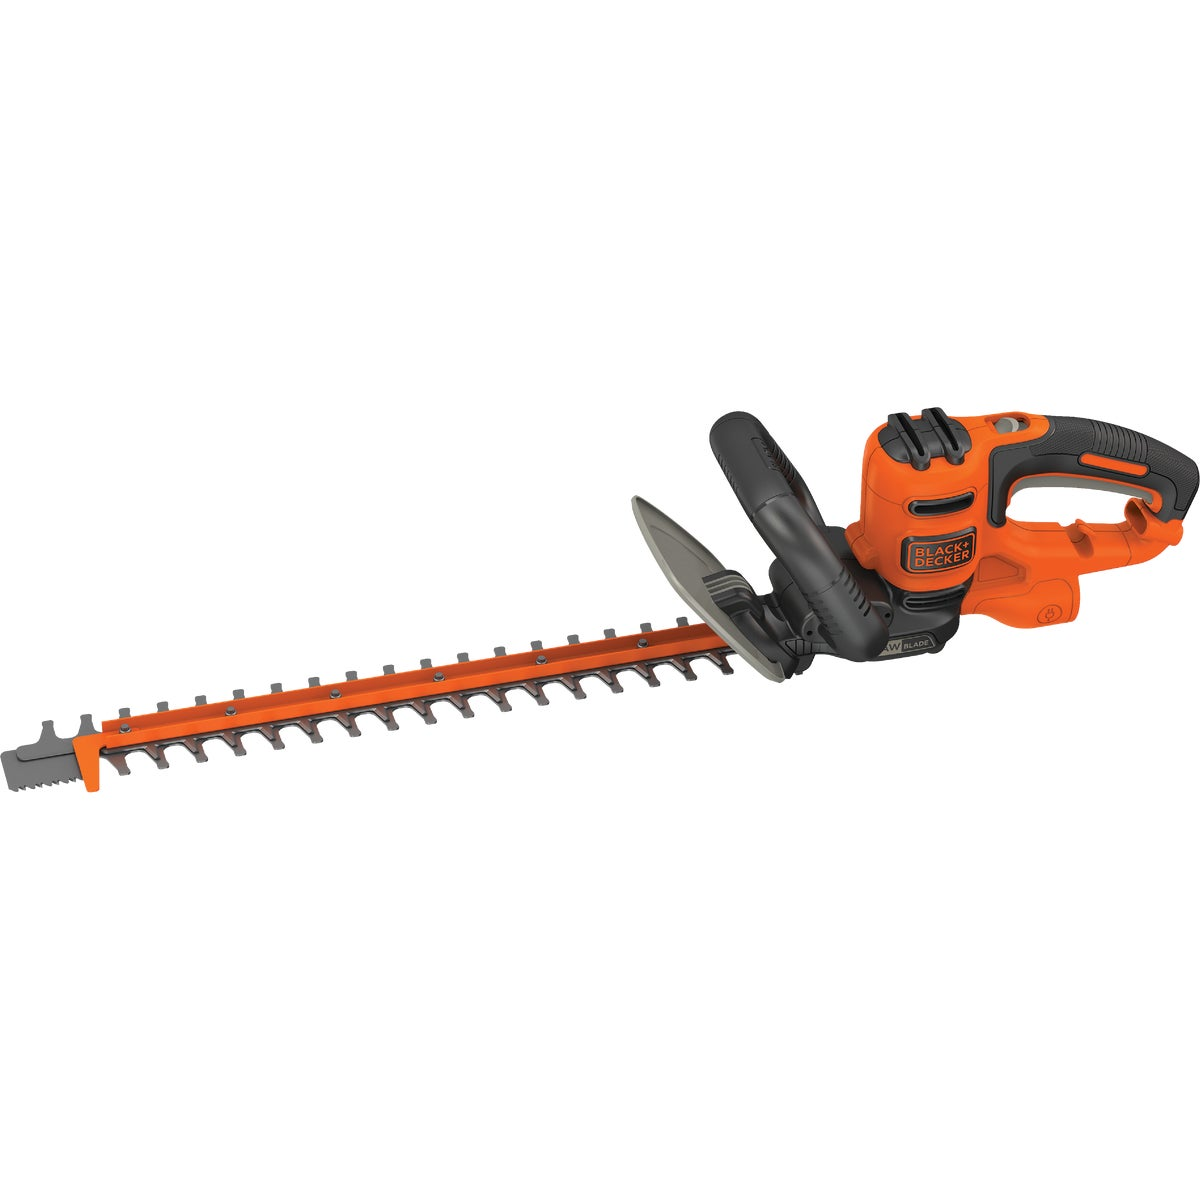 "22"" HEDGE TRIMMER - HT22 by Black & Decker"